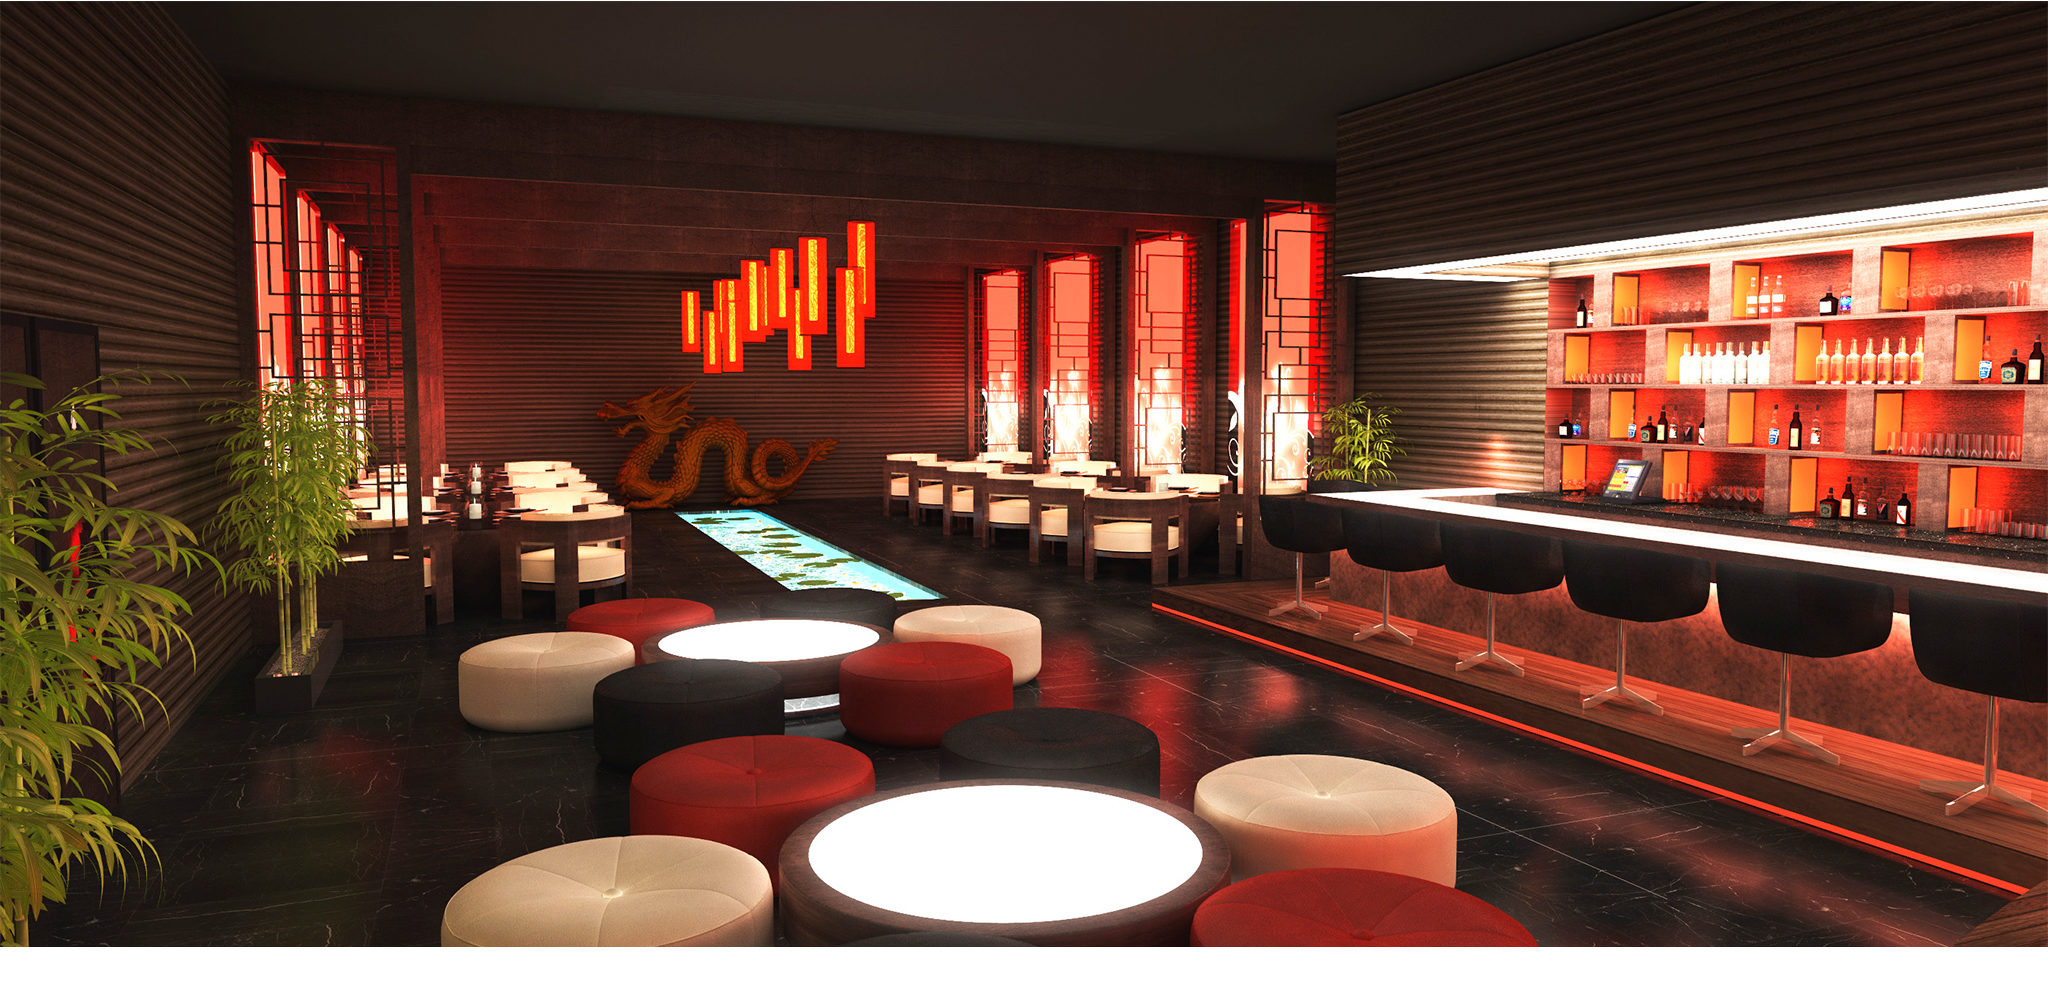 Asian Restaurant 3D Image